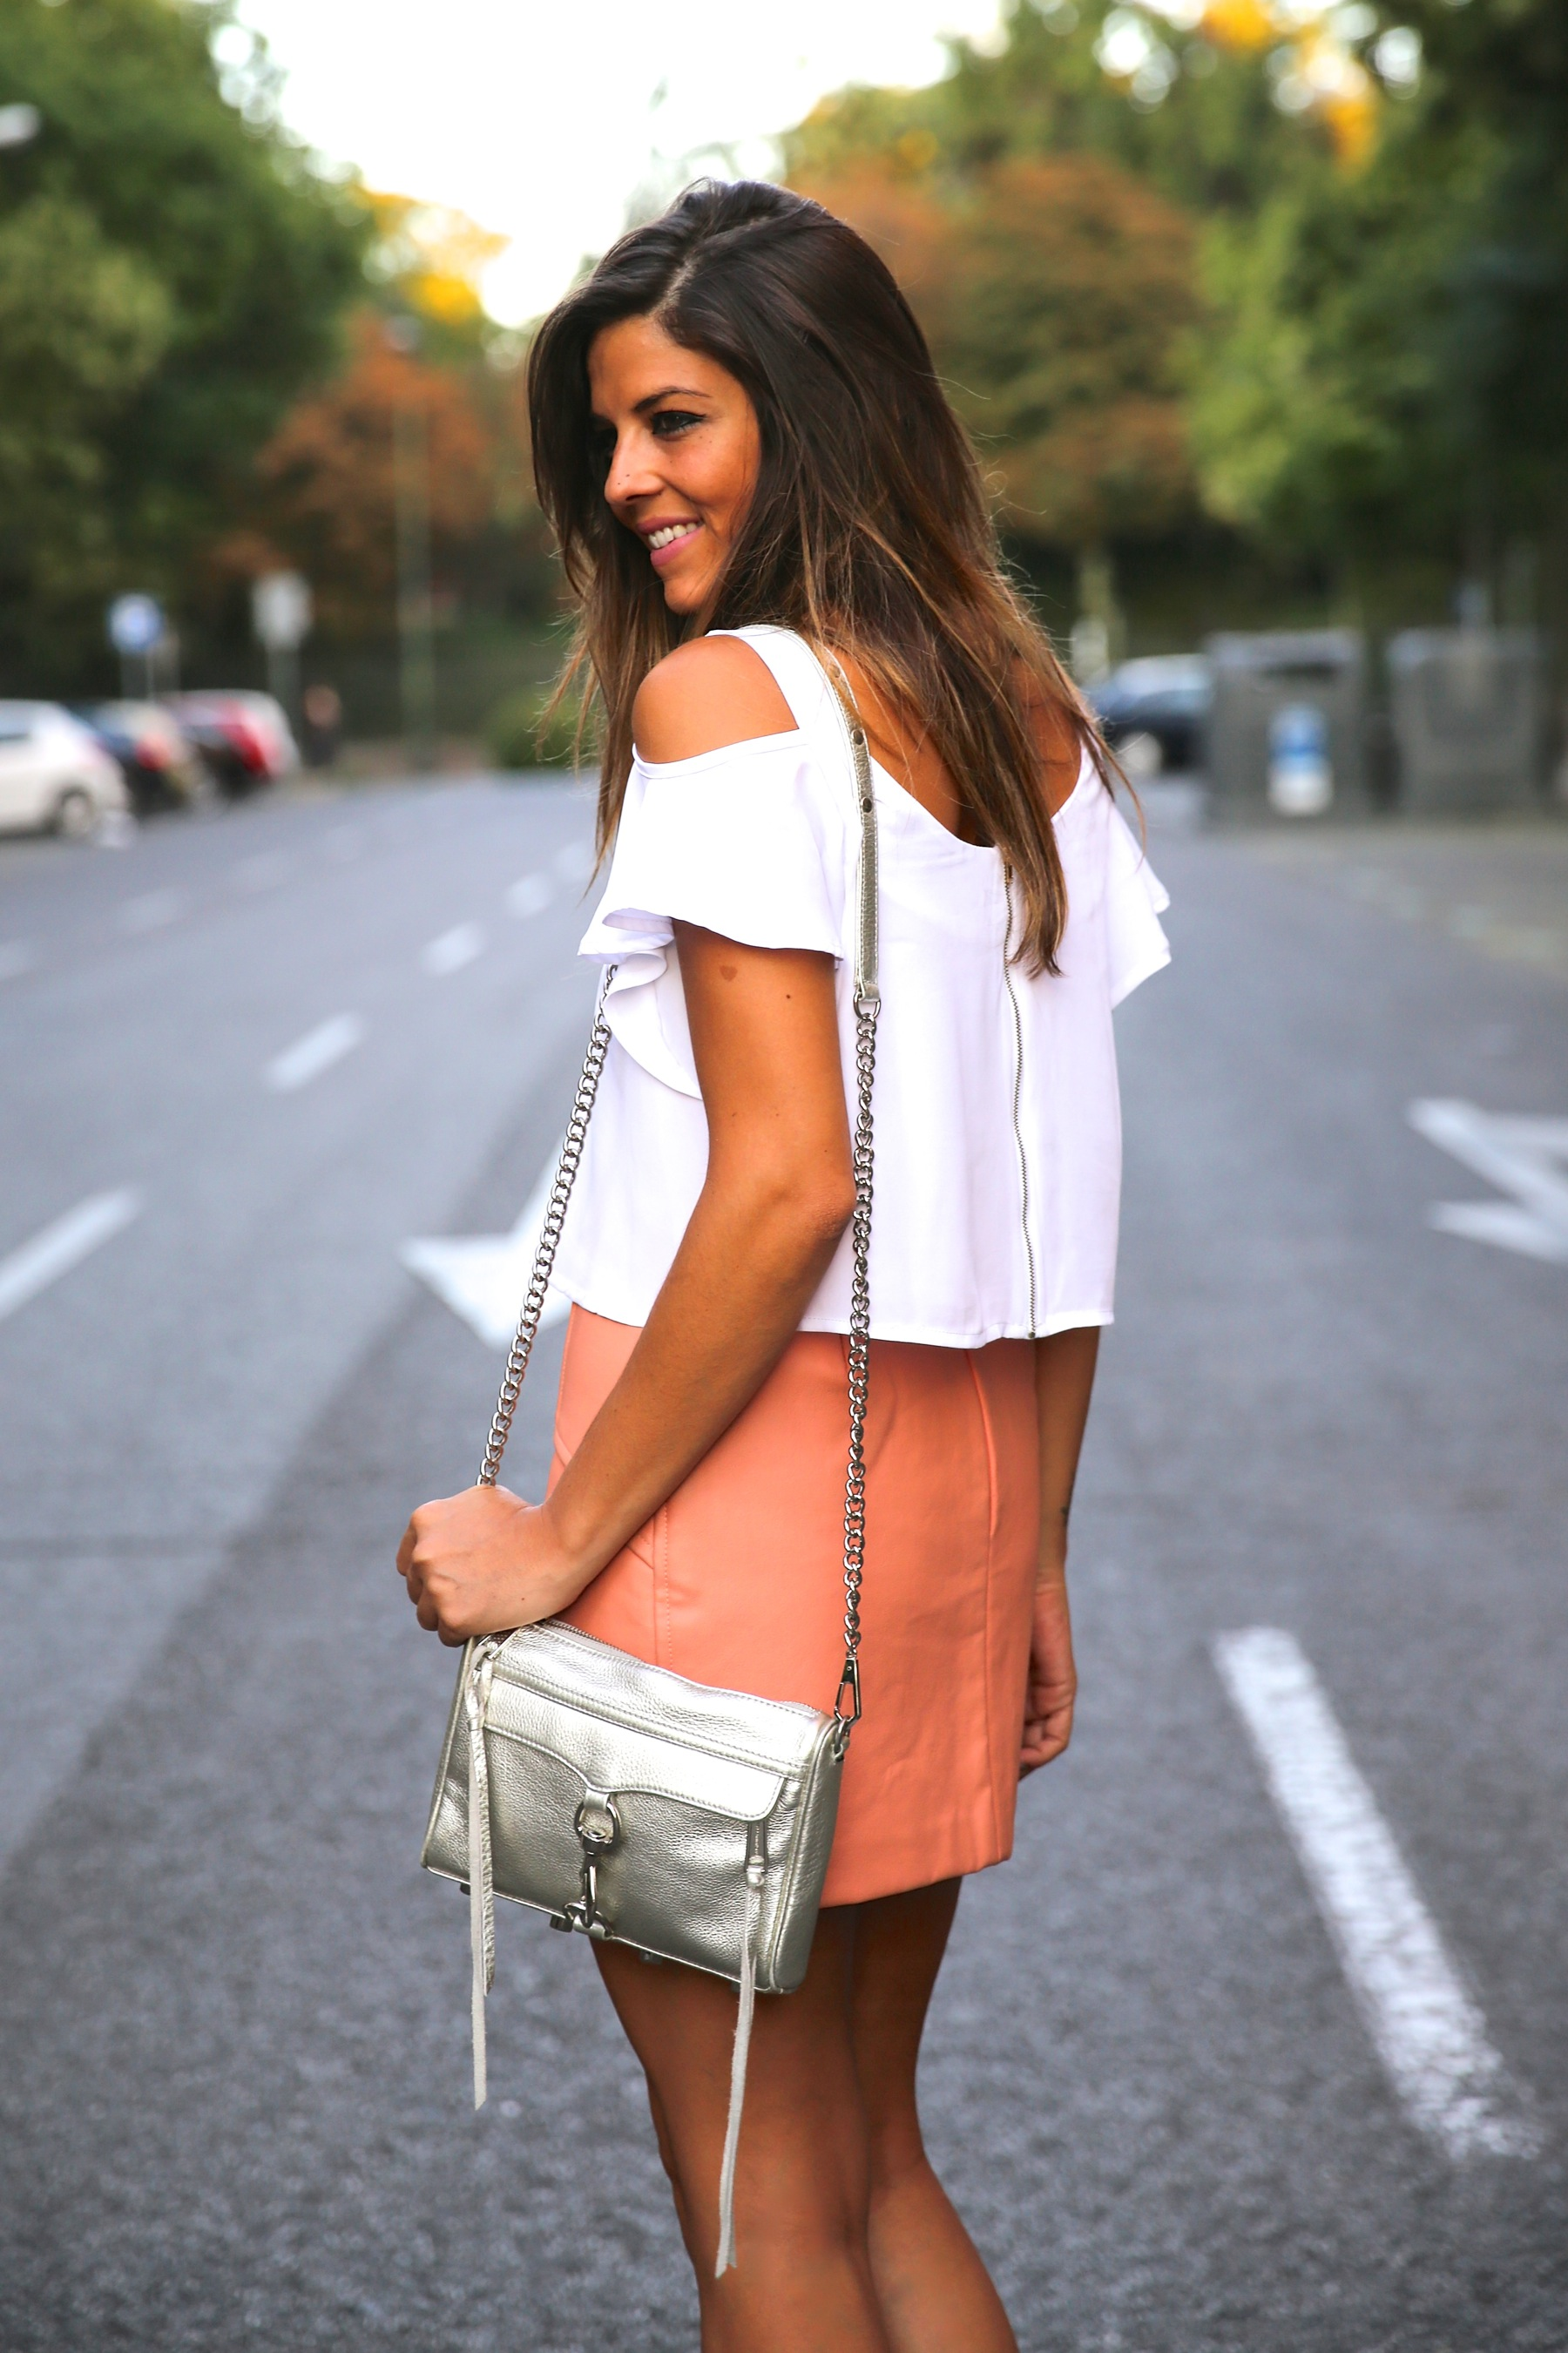 trendy_taste-look-outfit-street_style-ootd-blog-blogger-fashion_spain-moda_españa-madrid-silver_stilettos-punta_plata-estiletos-falda_coral-coral_skirt-top-4